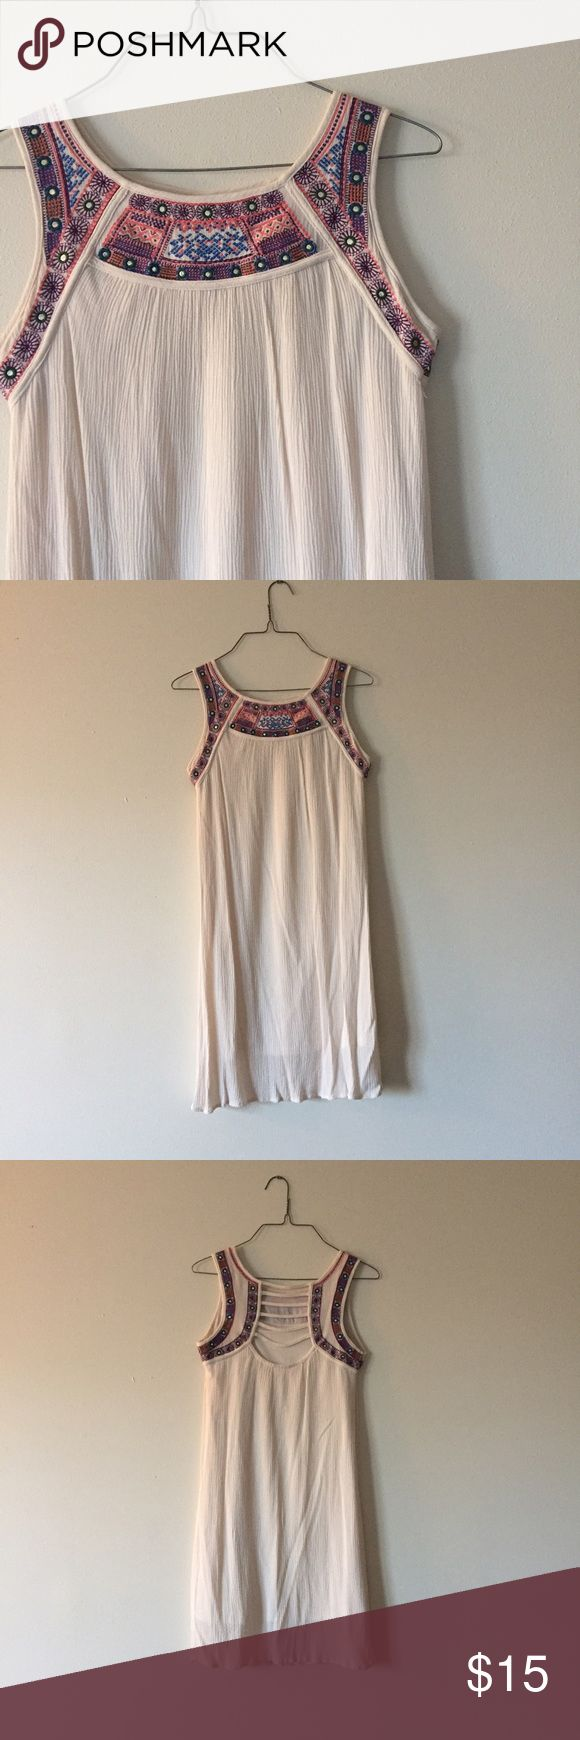 Beautiful boho shift dress with aztec accents Beautiful boho sleeveless shift dress with bright aztec design around neck and open cage back. In excellent condition and perfect for any occasion or upcoming spring or summer event Xhilaration Dresses